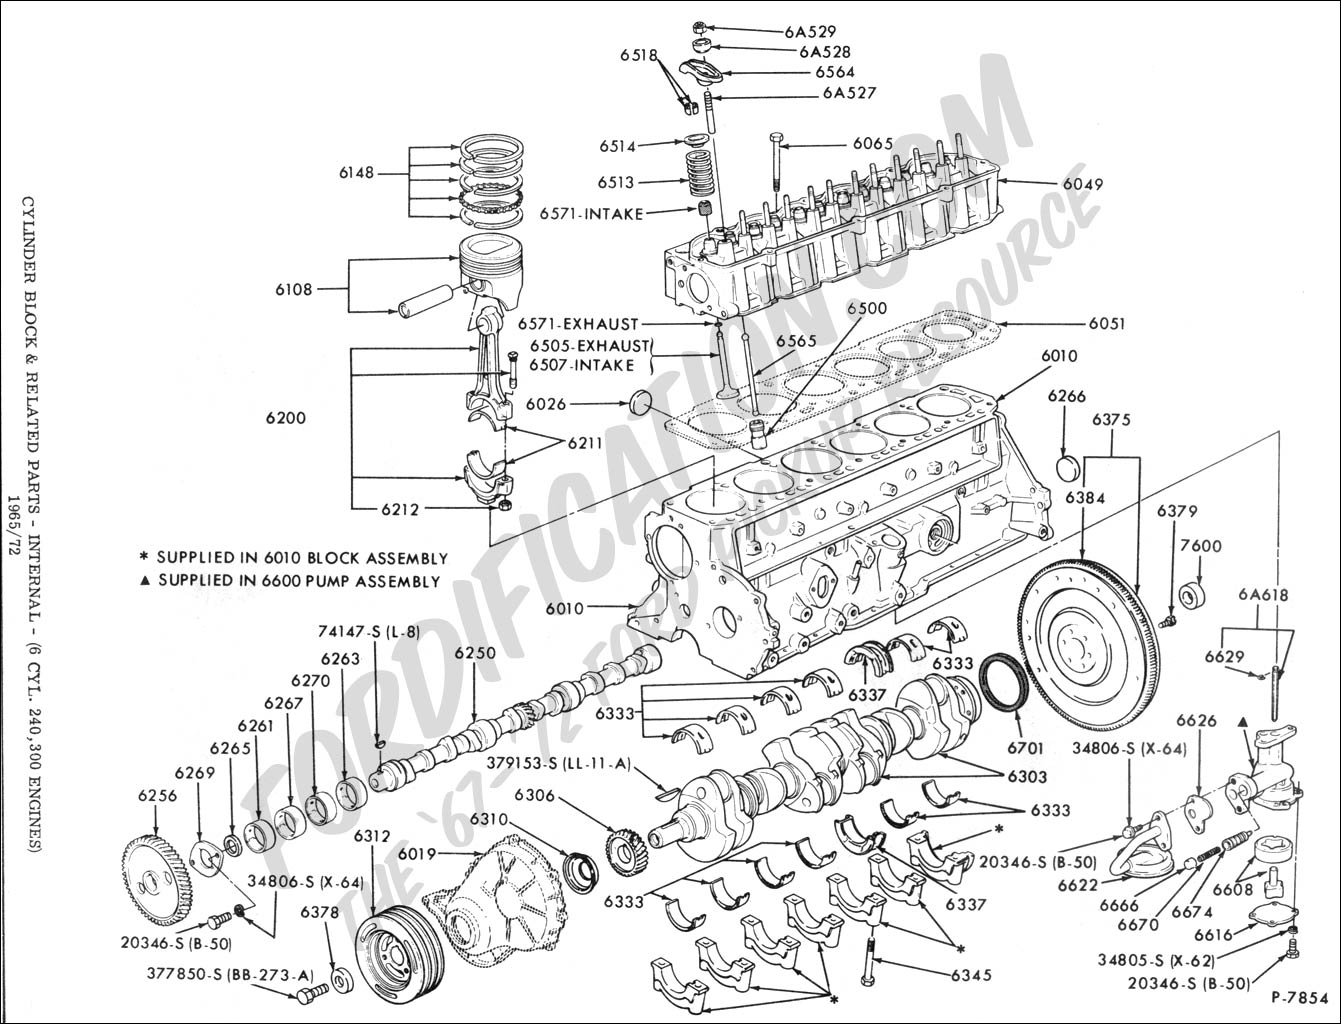 4 cylinder engine diagram new viddyup  international v8 engine diagram get free image about for 4 cylinder engine diagram